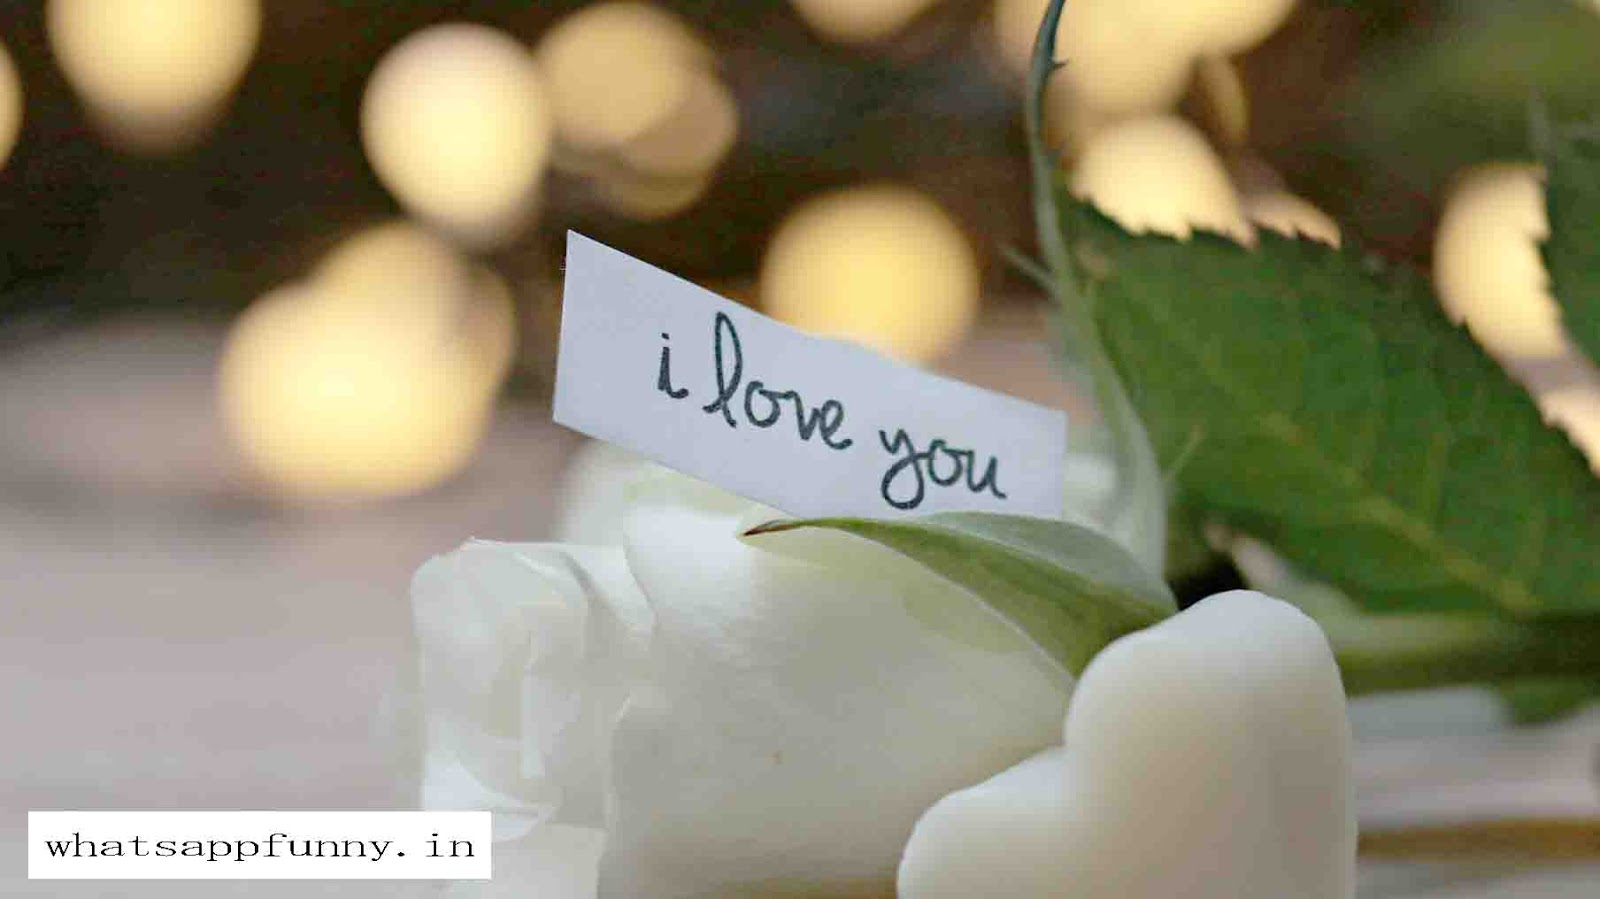 love images download for whatsapp profile hd